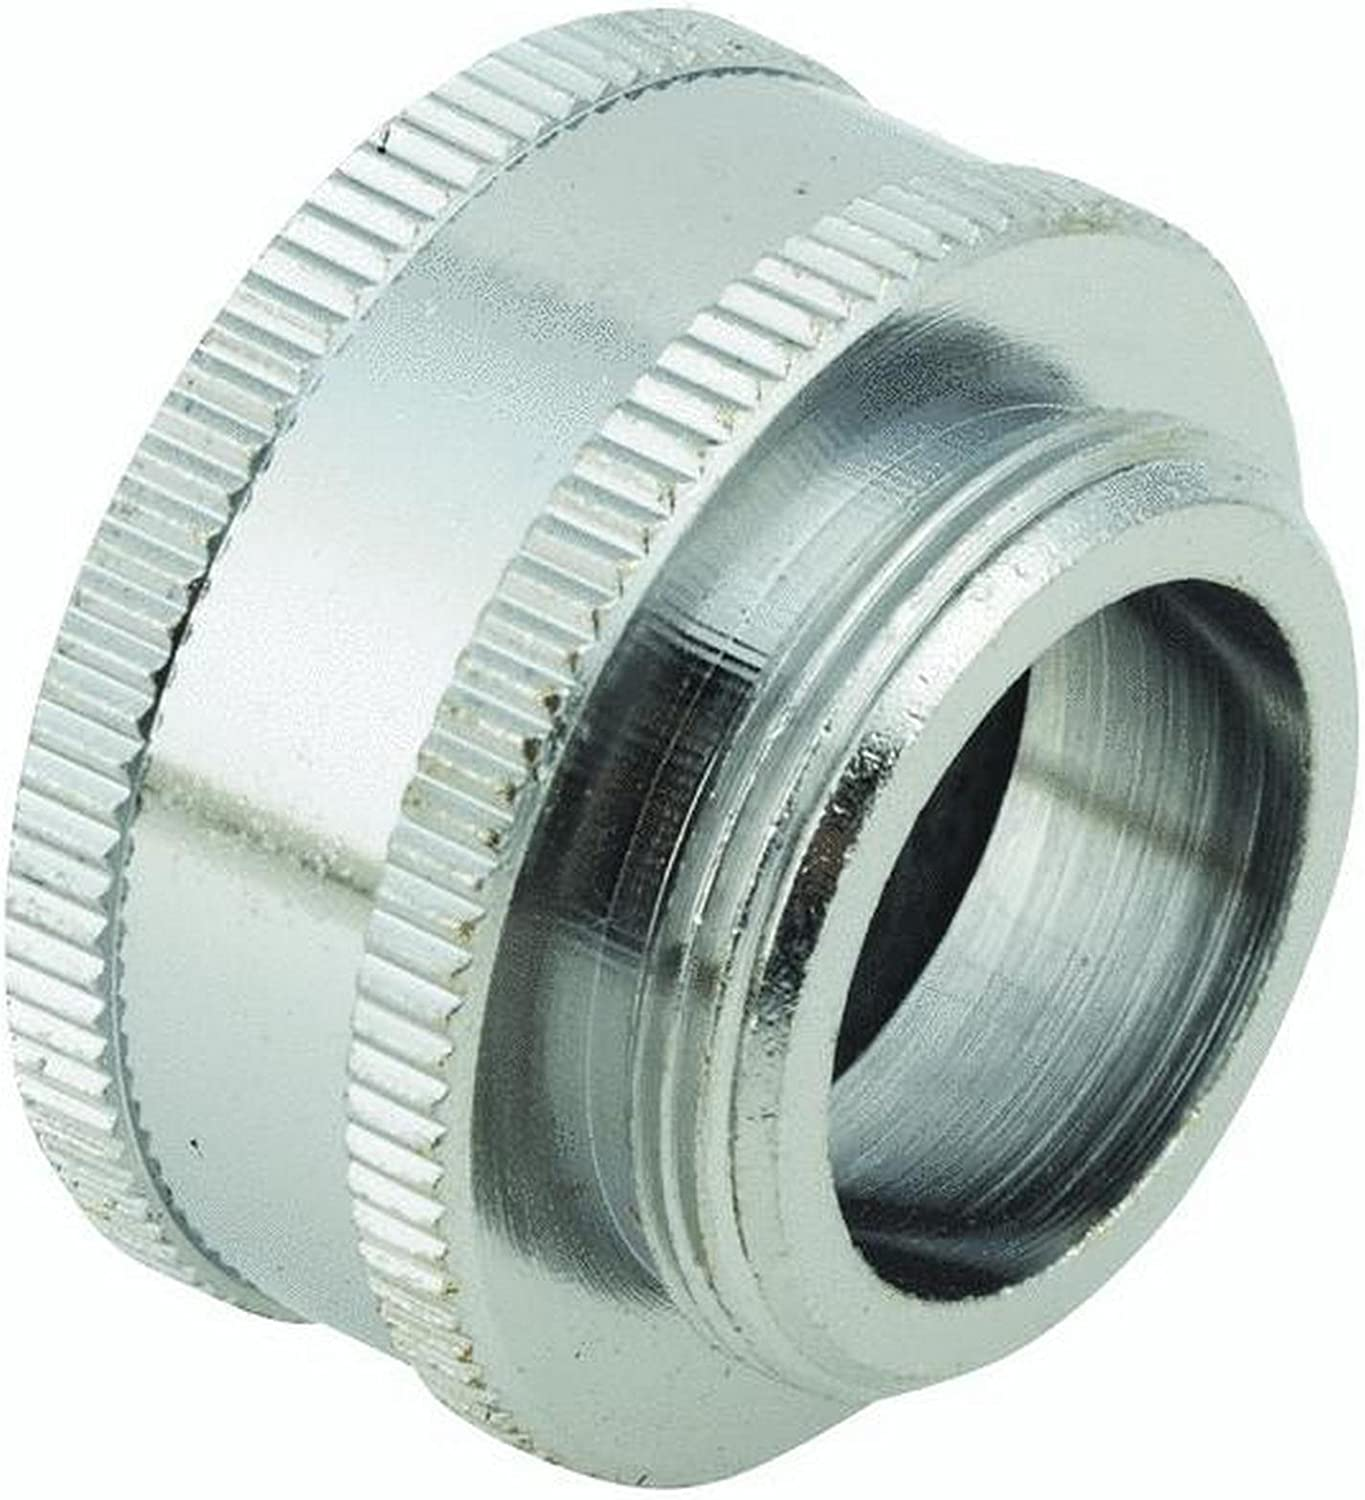 55/64 Male to 3/4 Female Hose Thread, Faucet to Hose Adapter